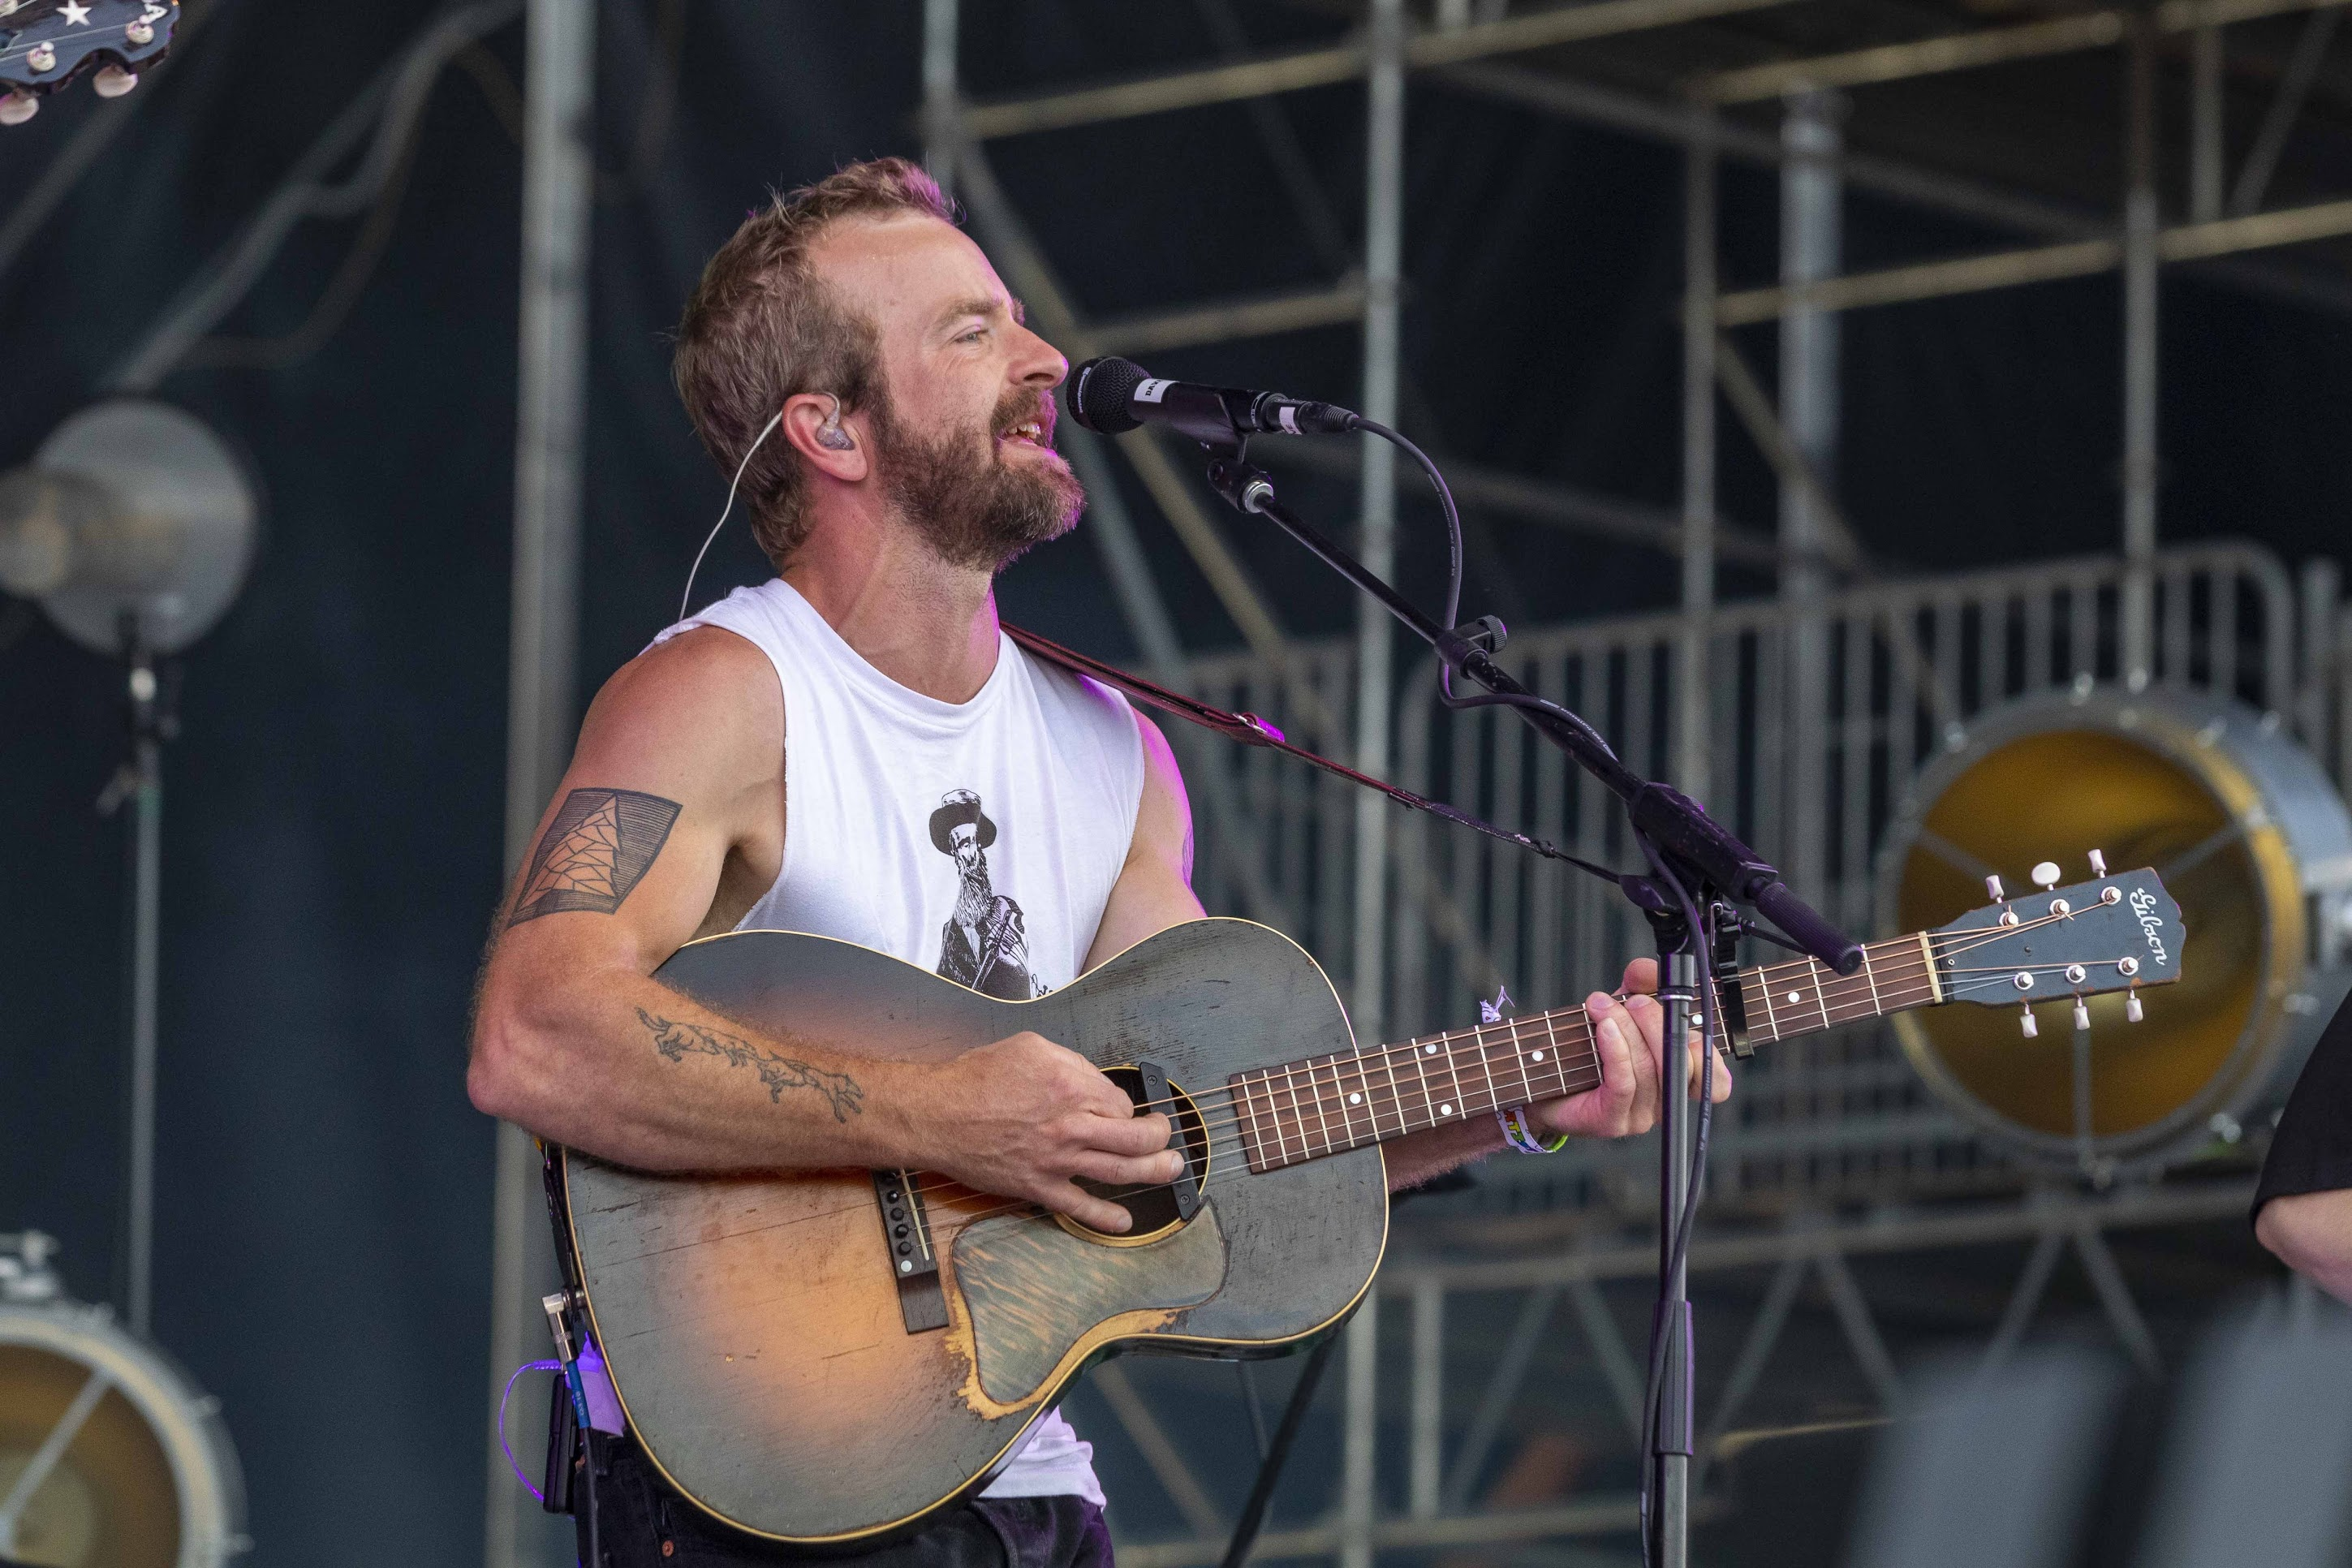 Dave Simonett | Trampled by Turtles